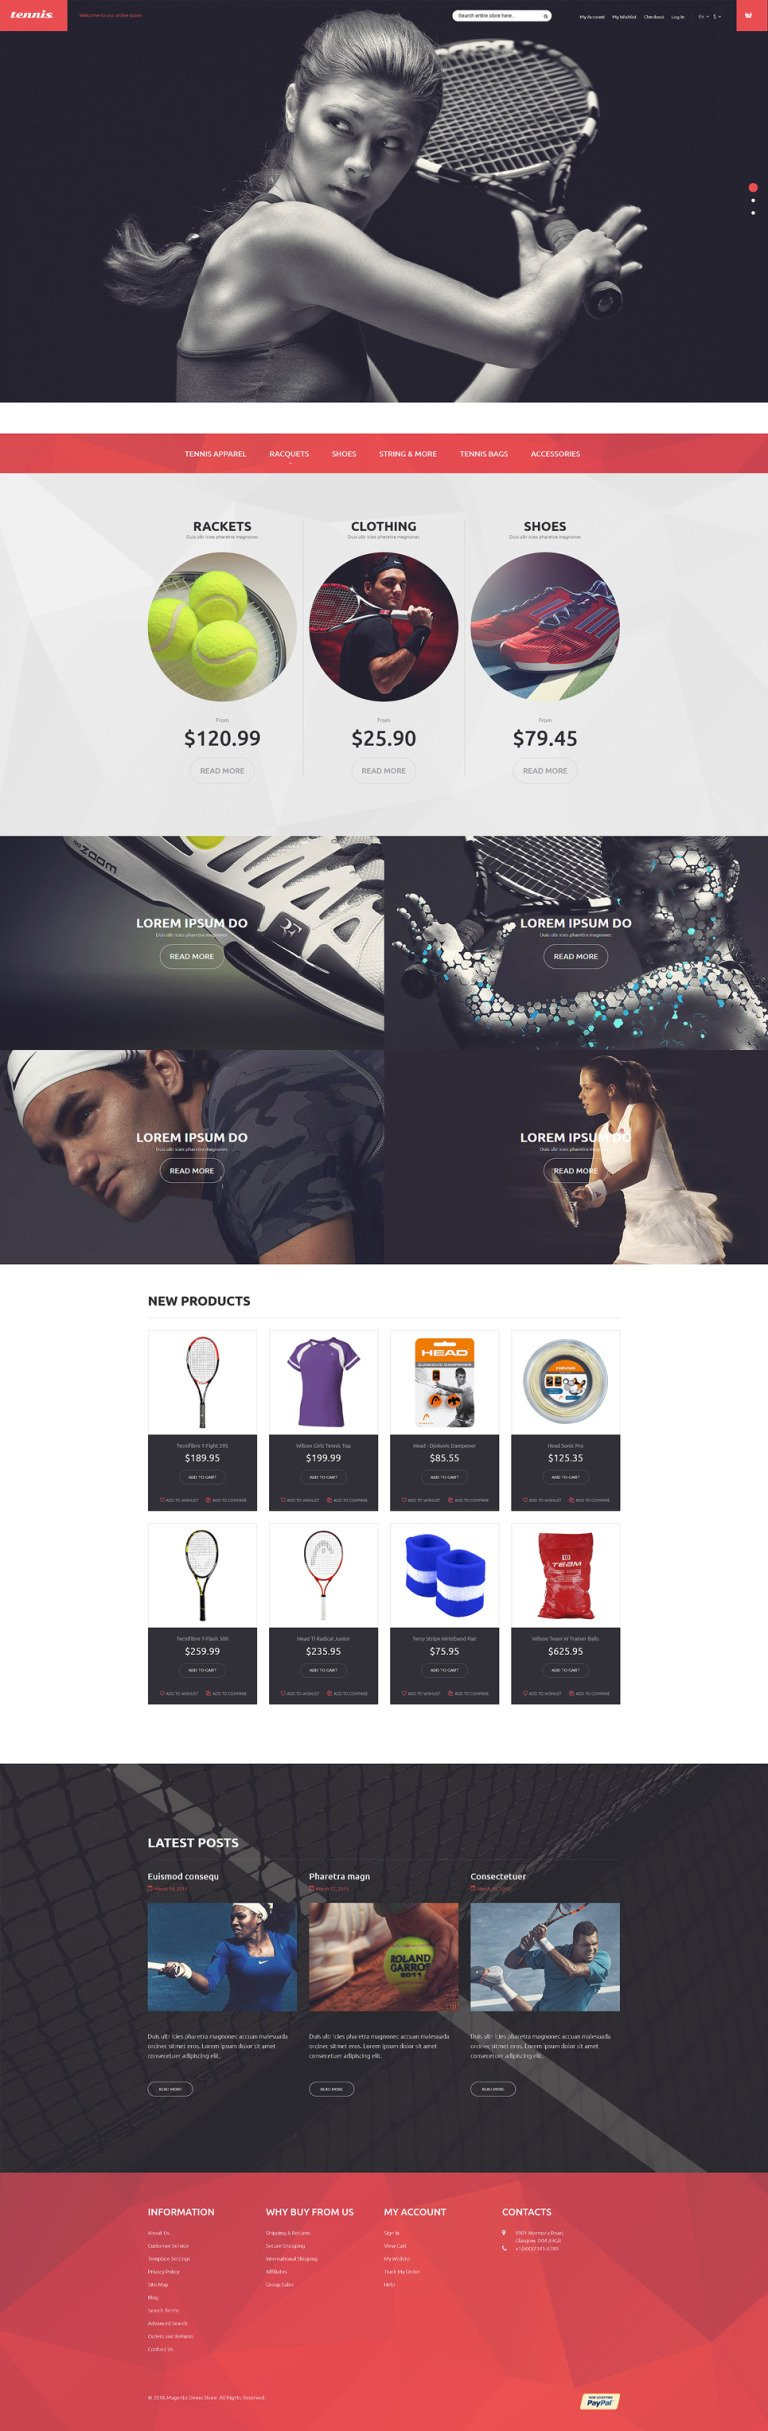 Tennis Equipment Magento Theme New Screenshots BIG